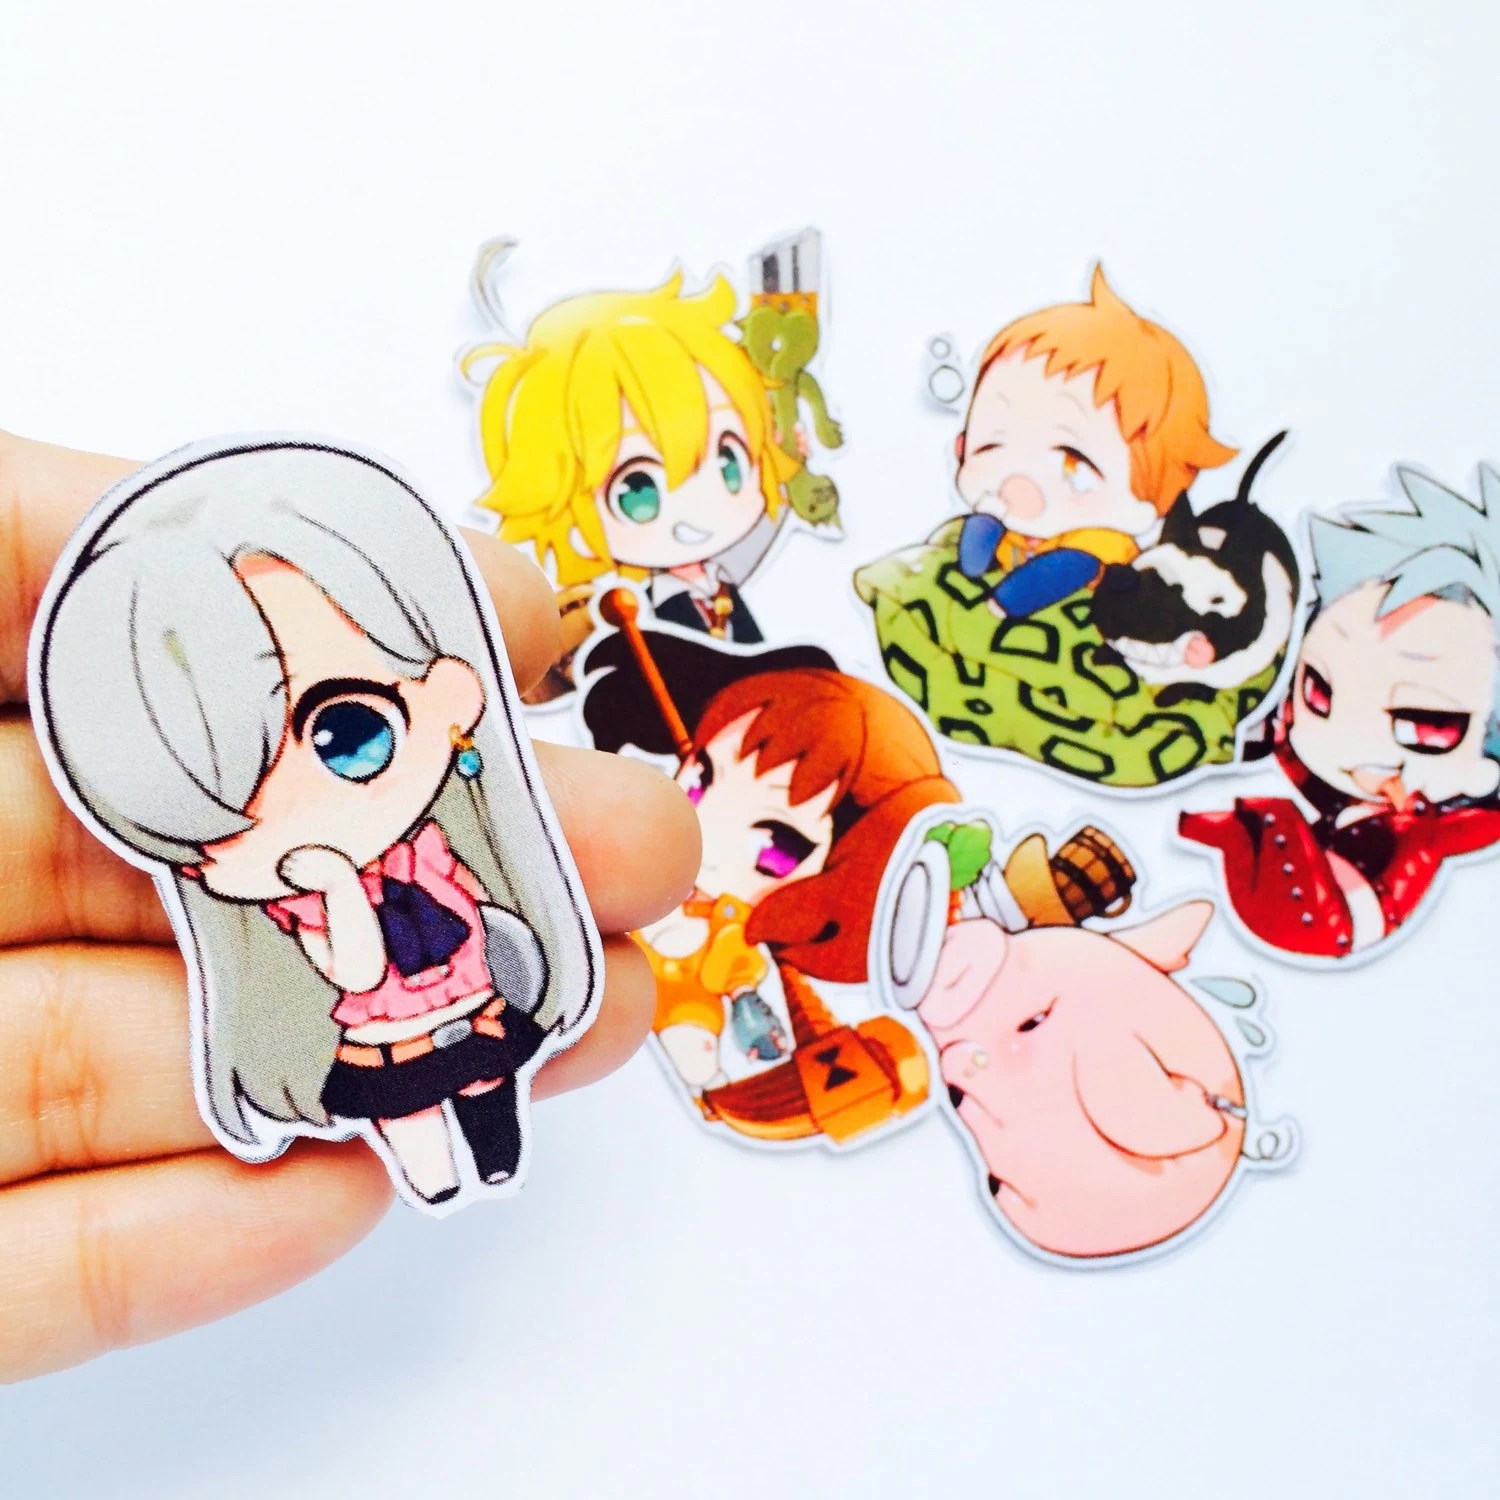 7 Deadly Sins Anime Manga Glossy Planner Kawaii Chibi Stickers